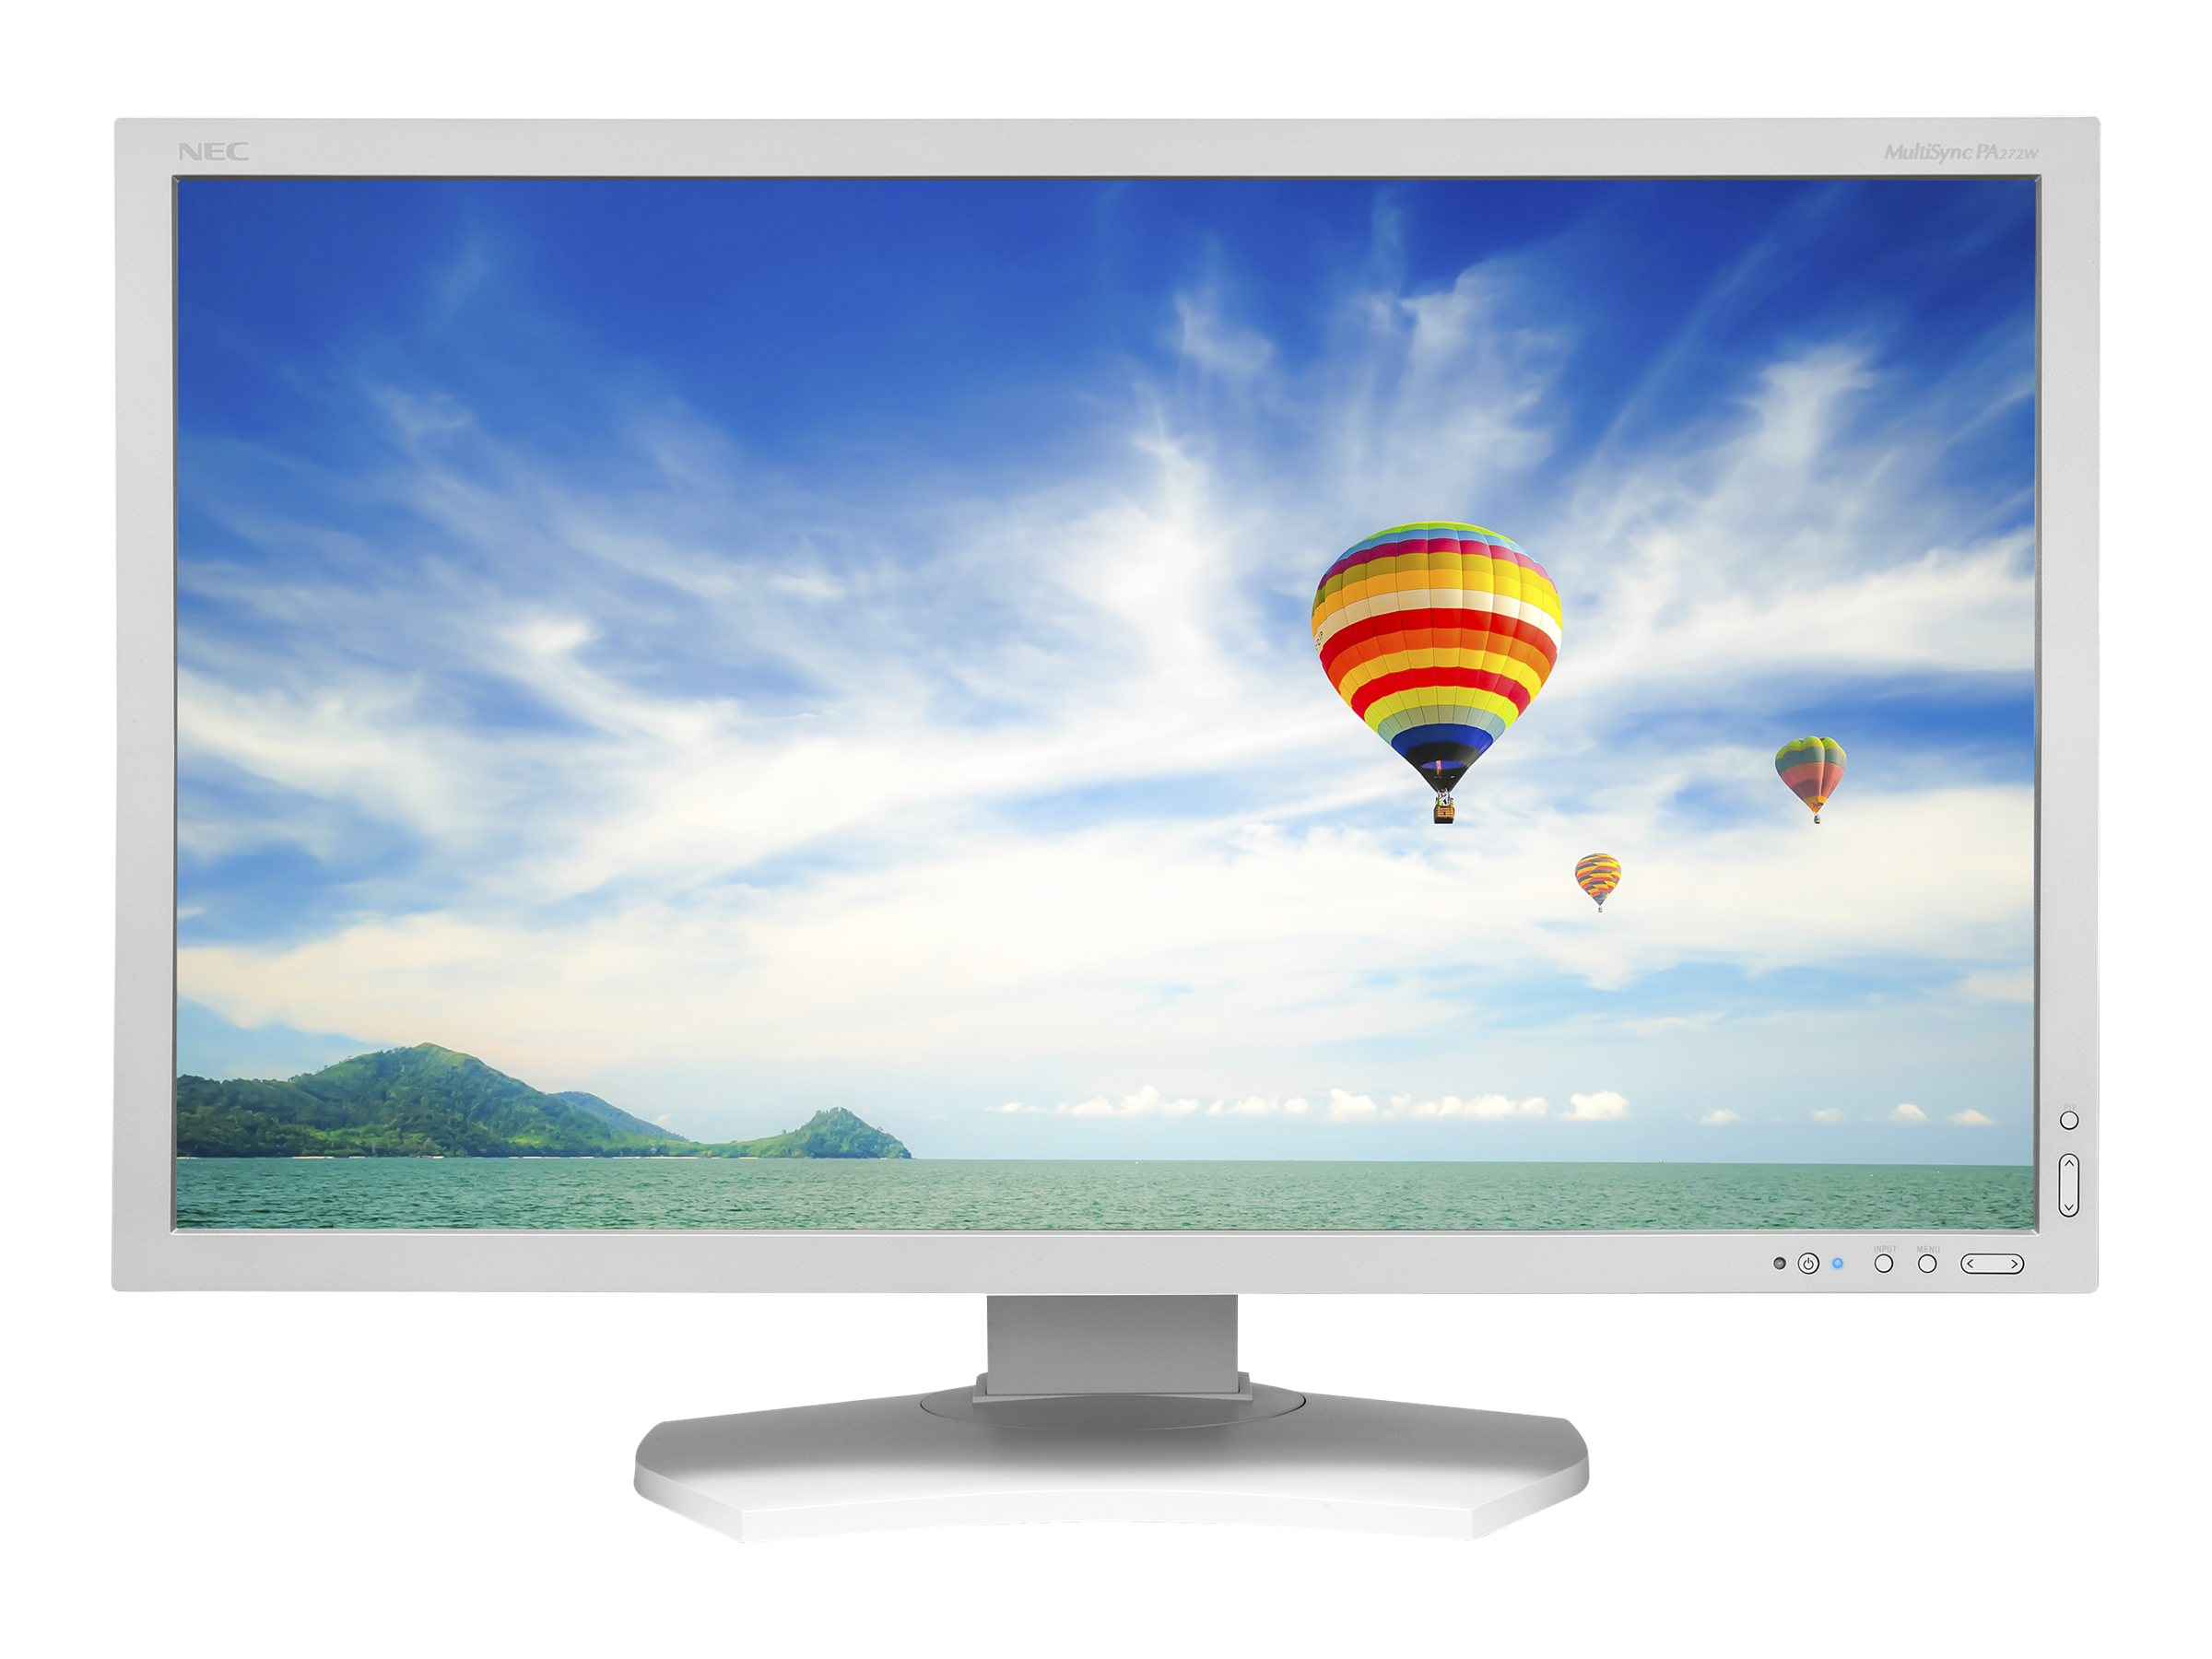 NEC 27 PA272W LED-LCD Monitor, White, PA272W